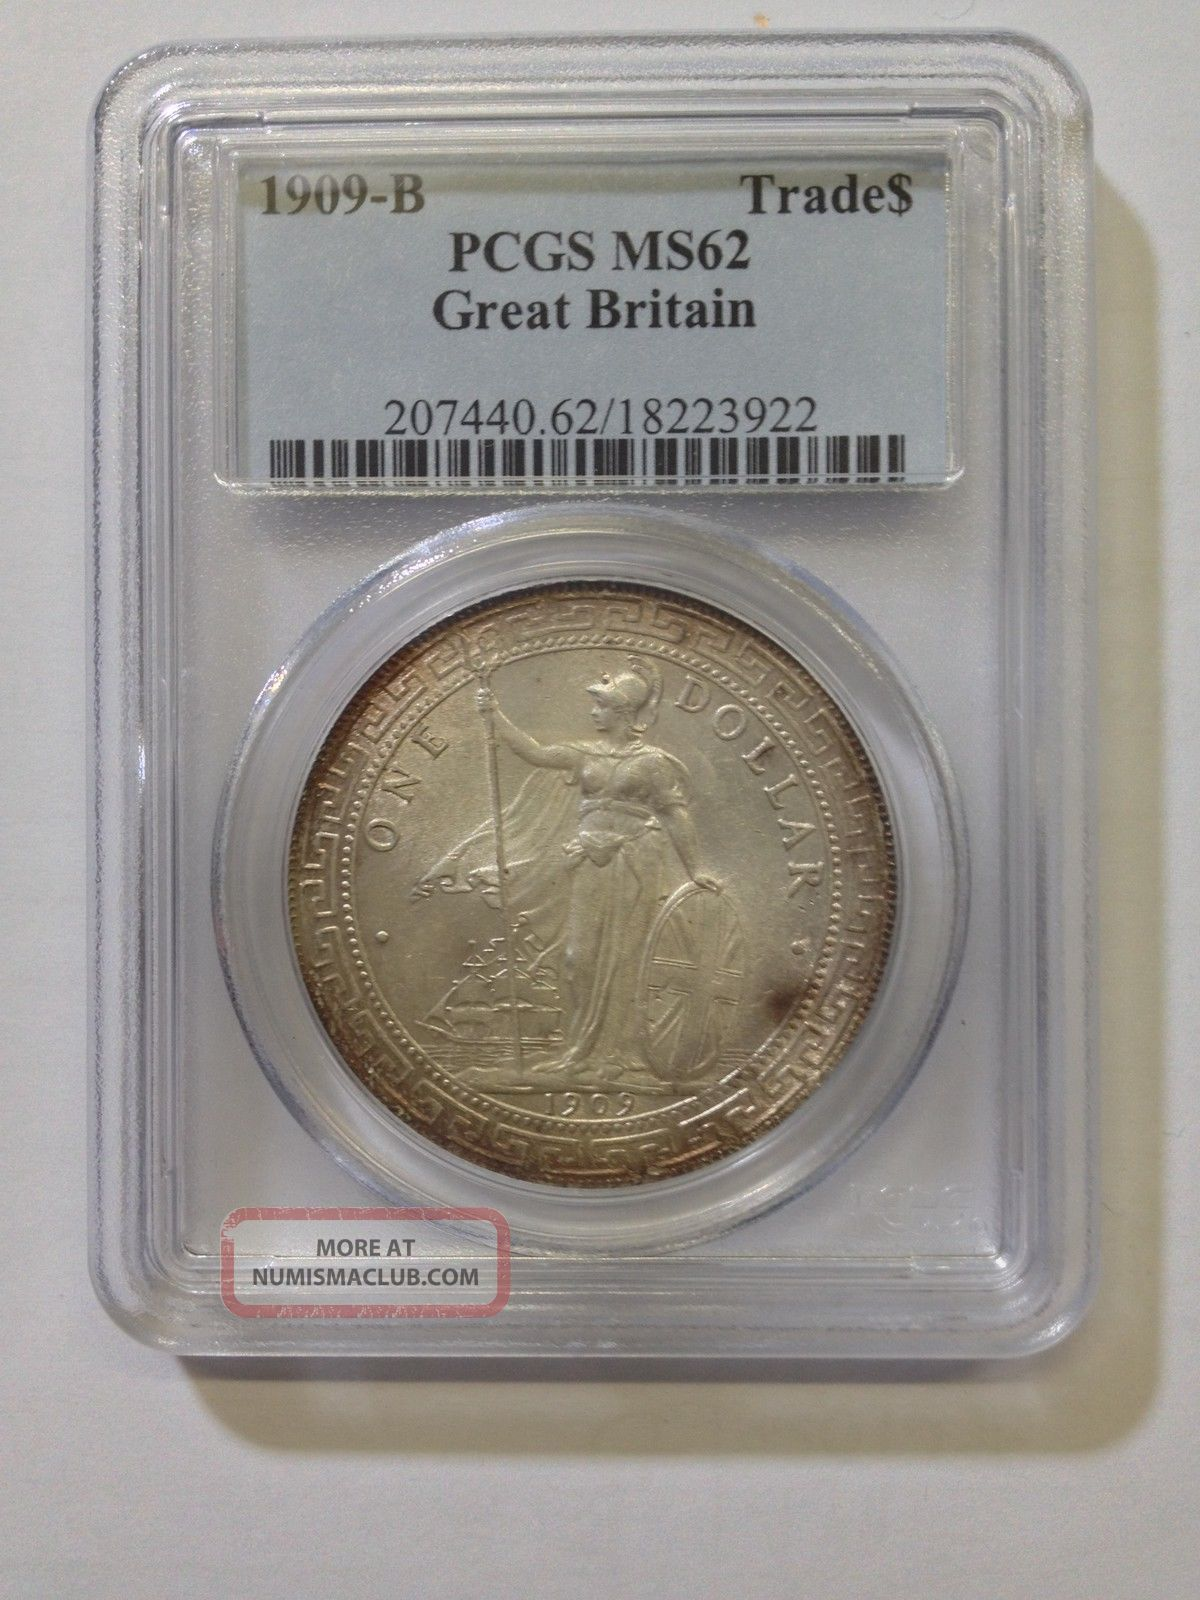 Pcgs Ms 62 1909 Great Britain Trade Dollar Silver